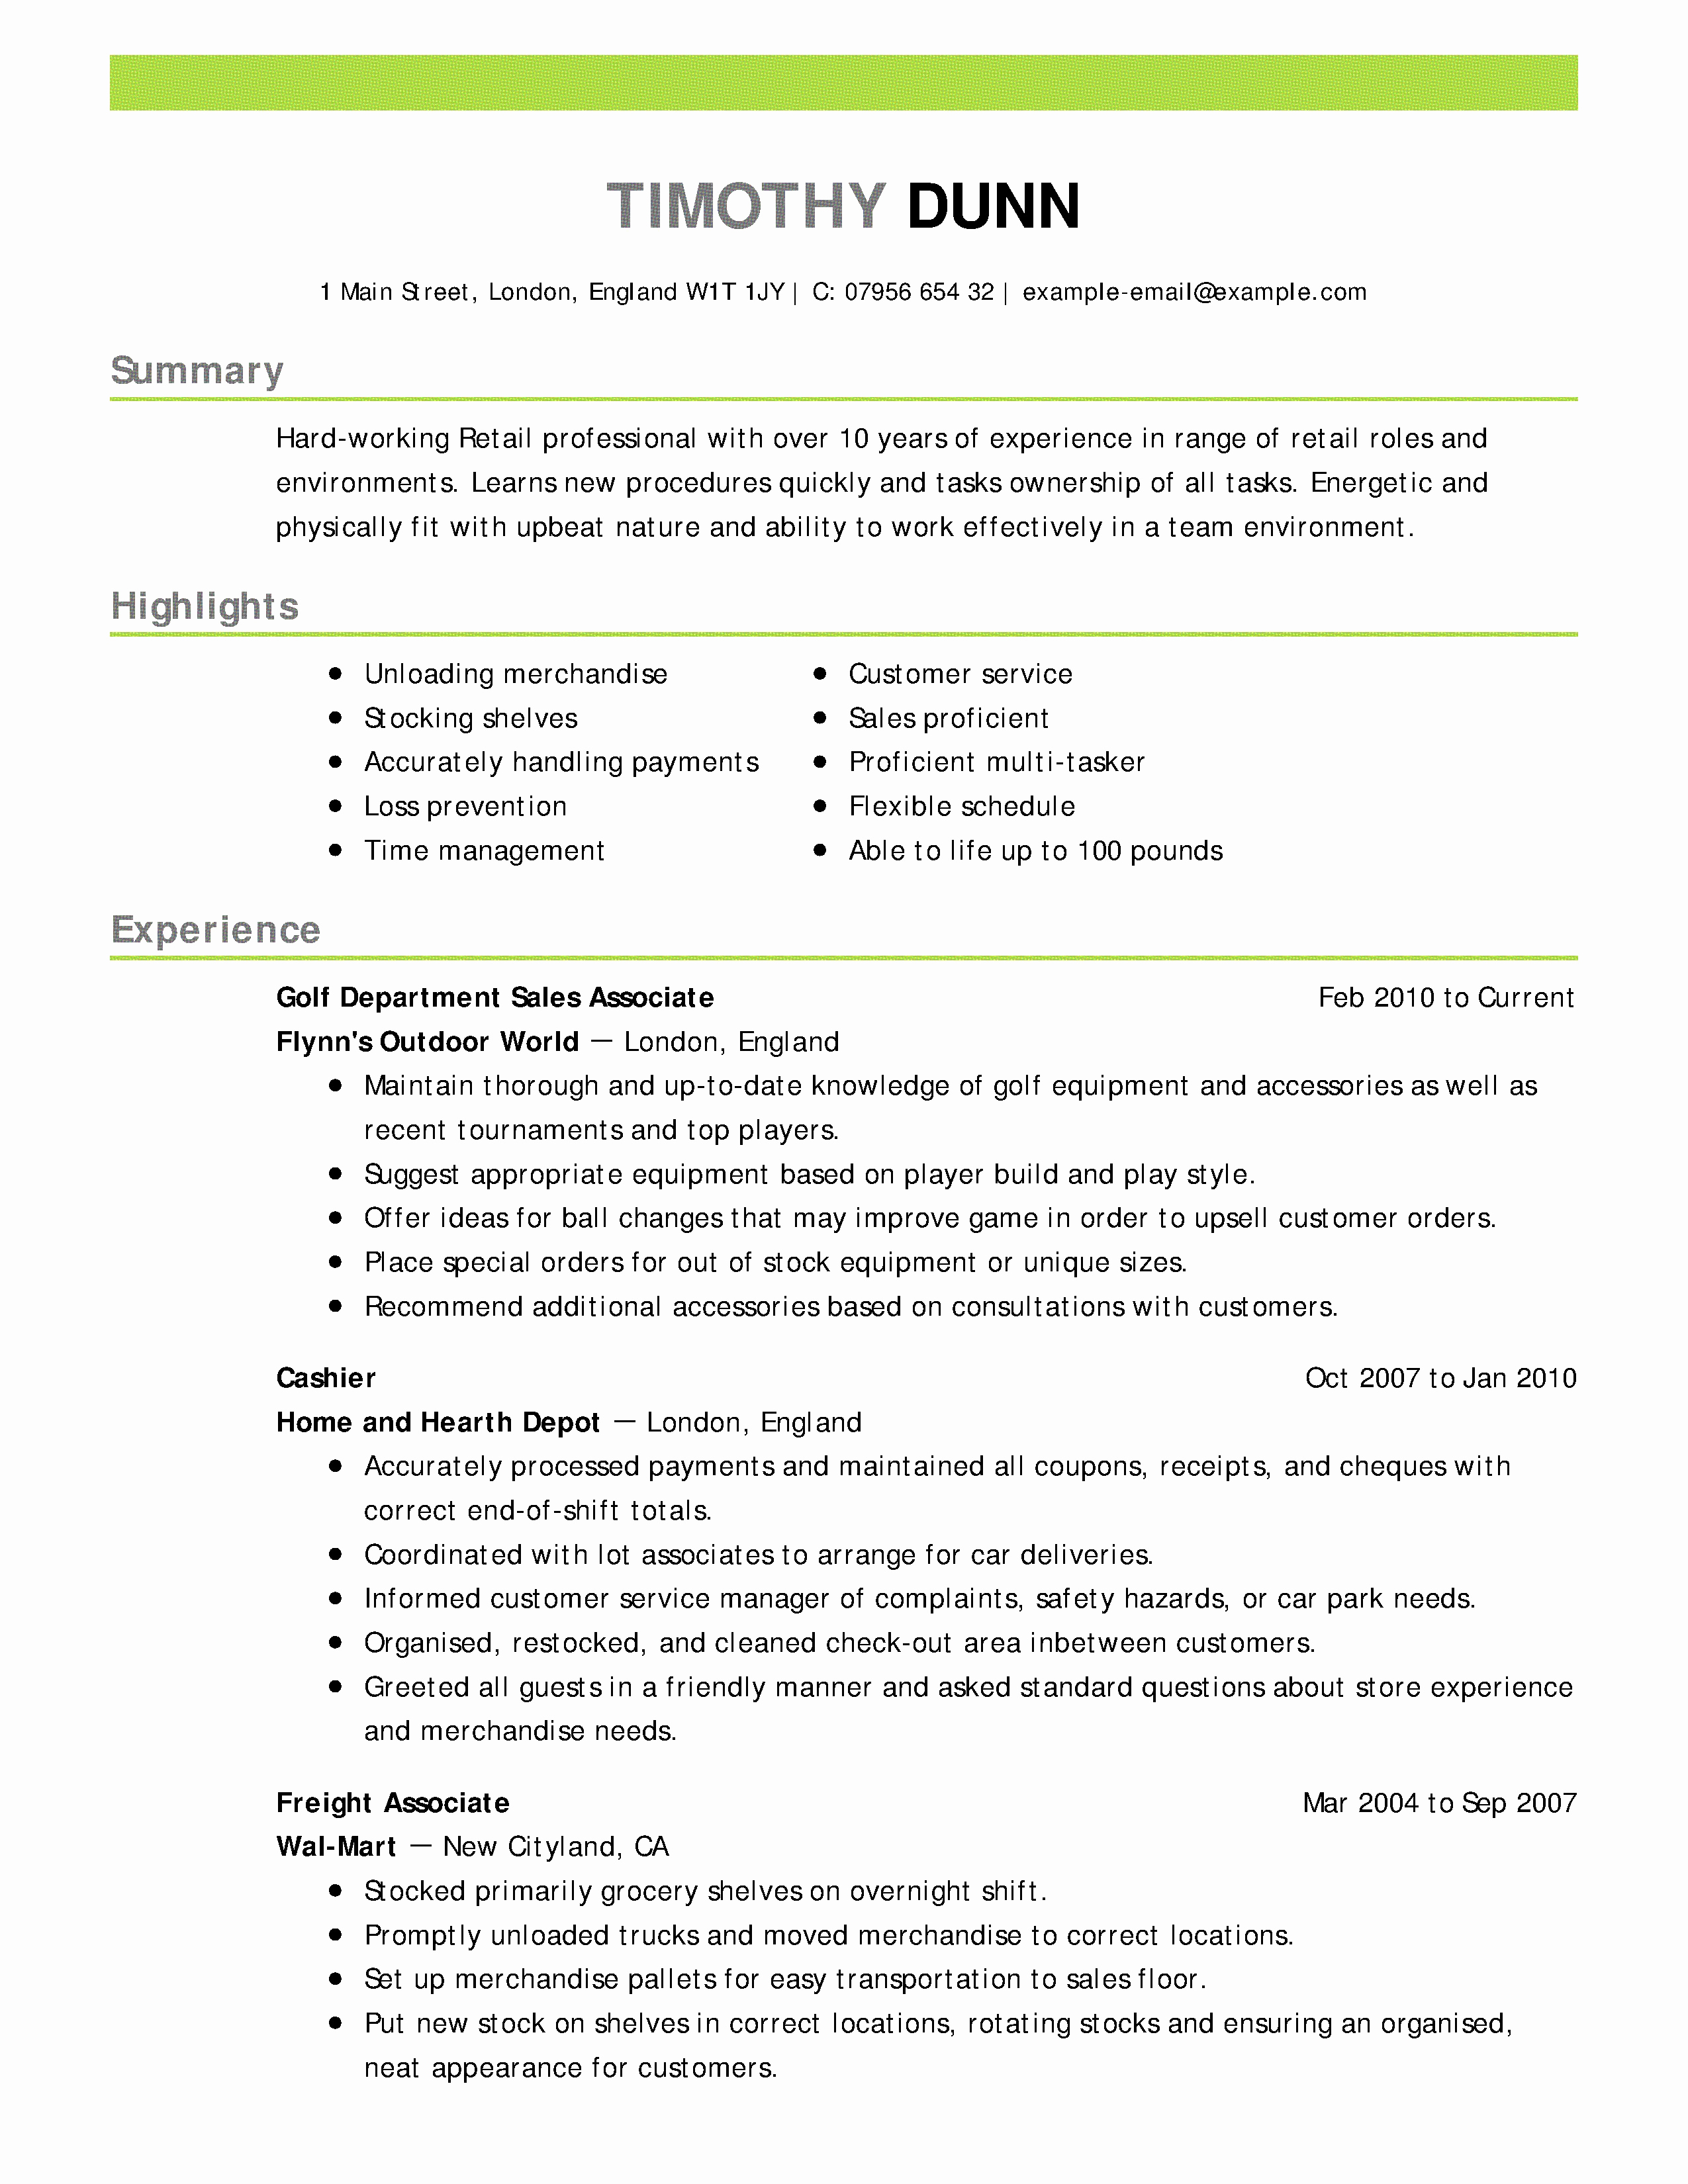 Sales Manager Resume - Resume for Sales Manager Unique Sales Executive Resume Best Rsync